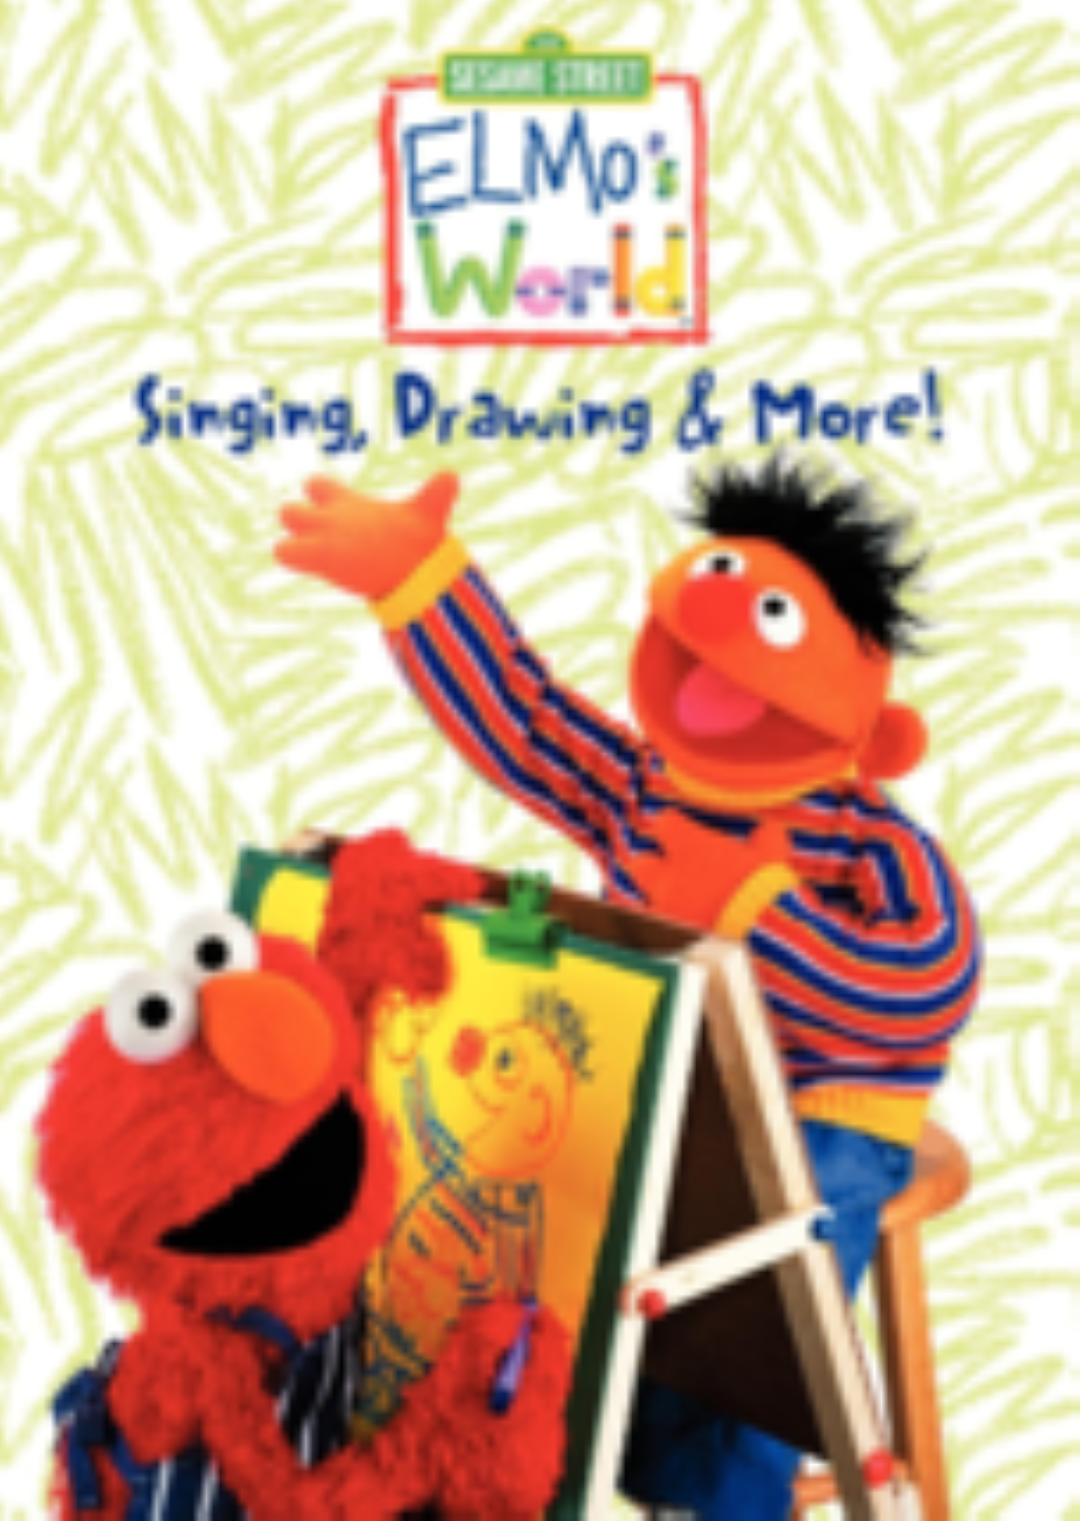 Elmo's World - Singing, Drawing & More Vhs